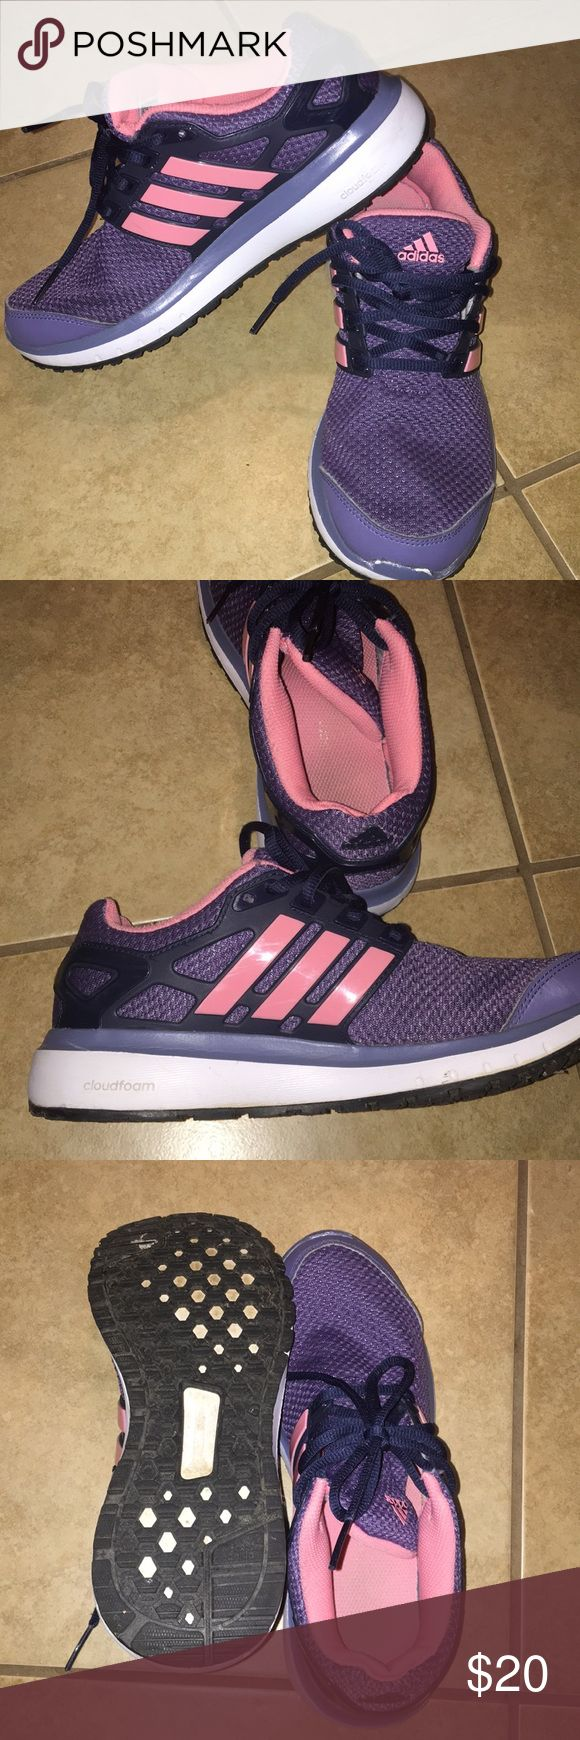 Adidas running shoes Super cute pink and purple adidas running shoes. Like new!! adidas Shoes Sneakers #runningshoes